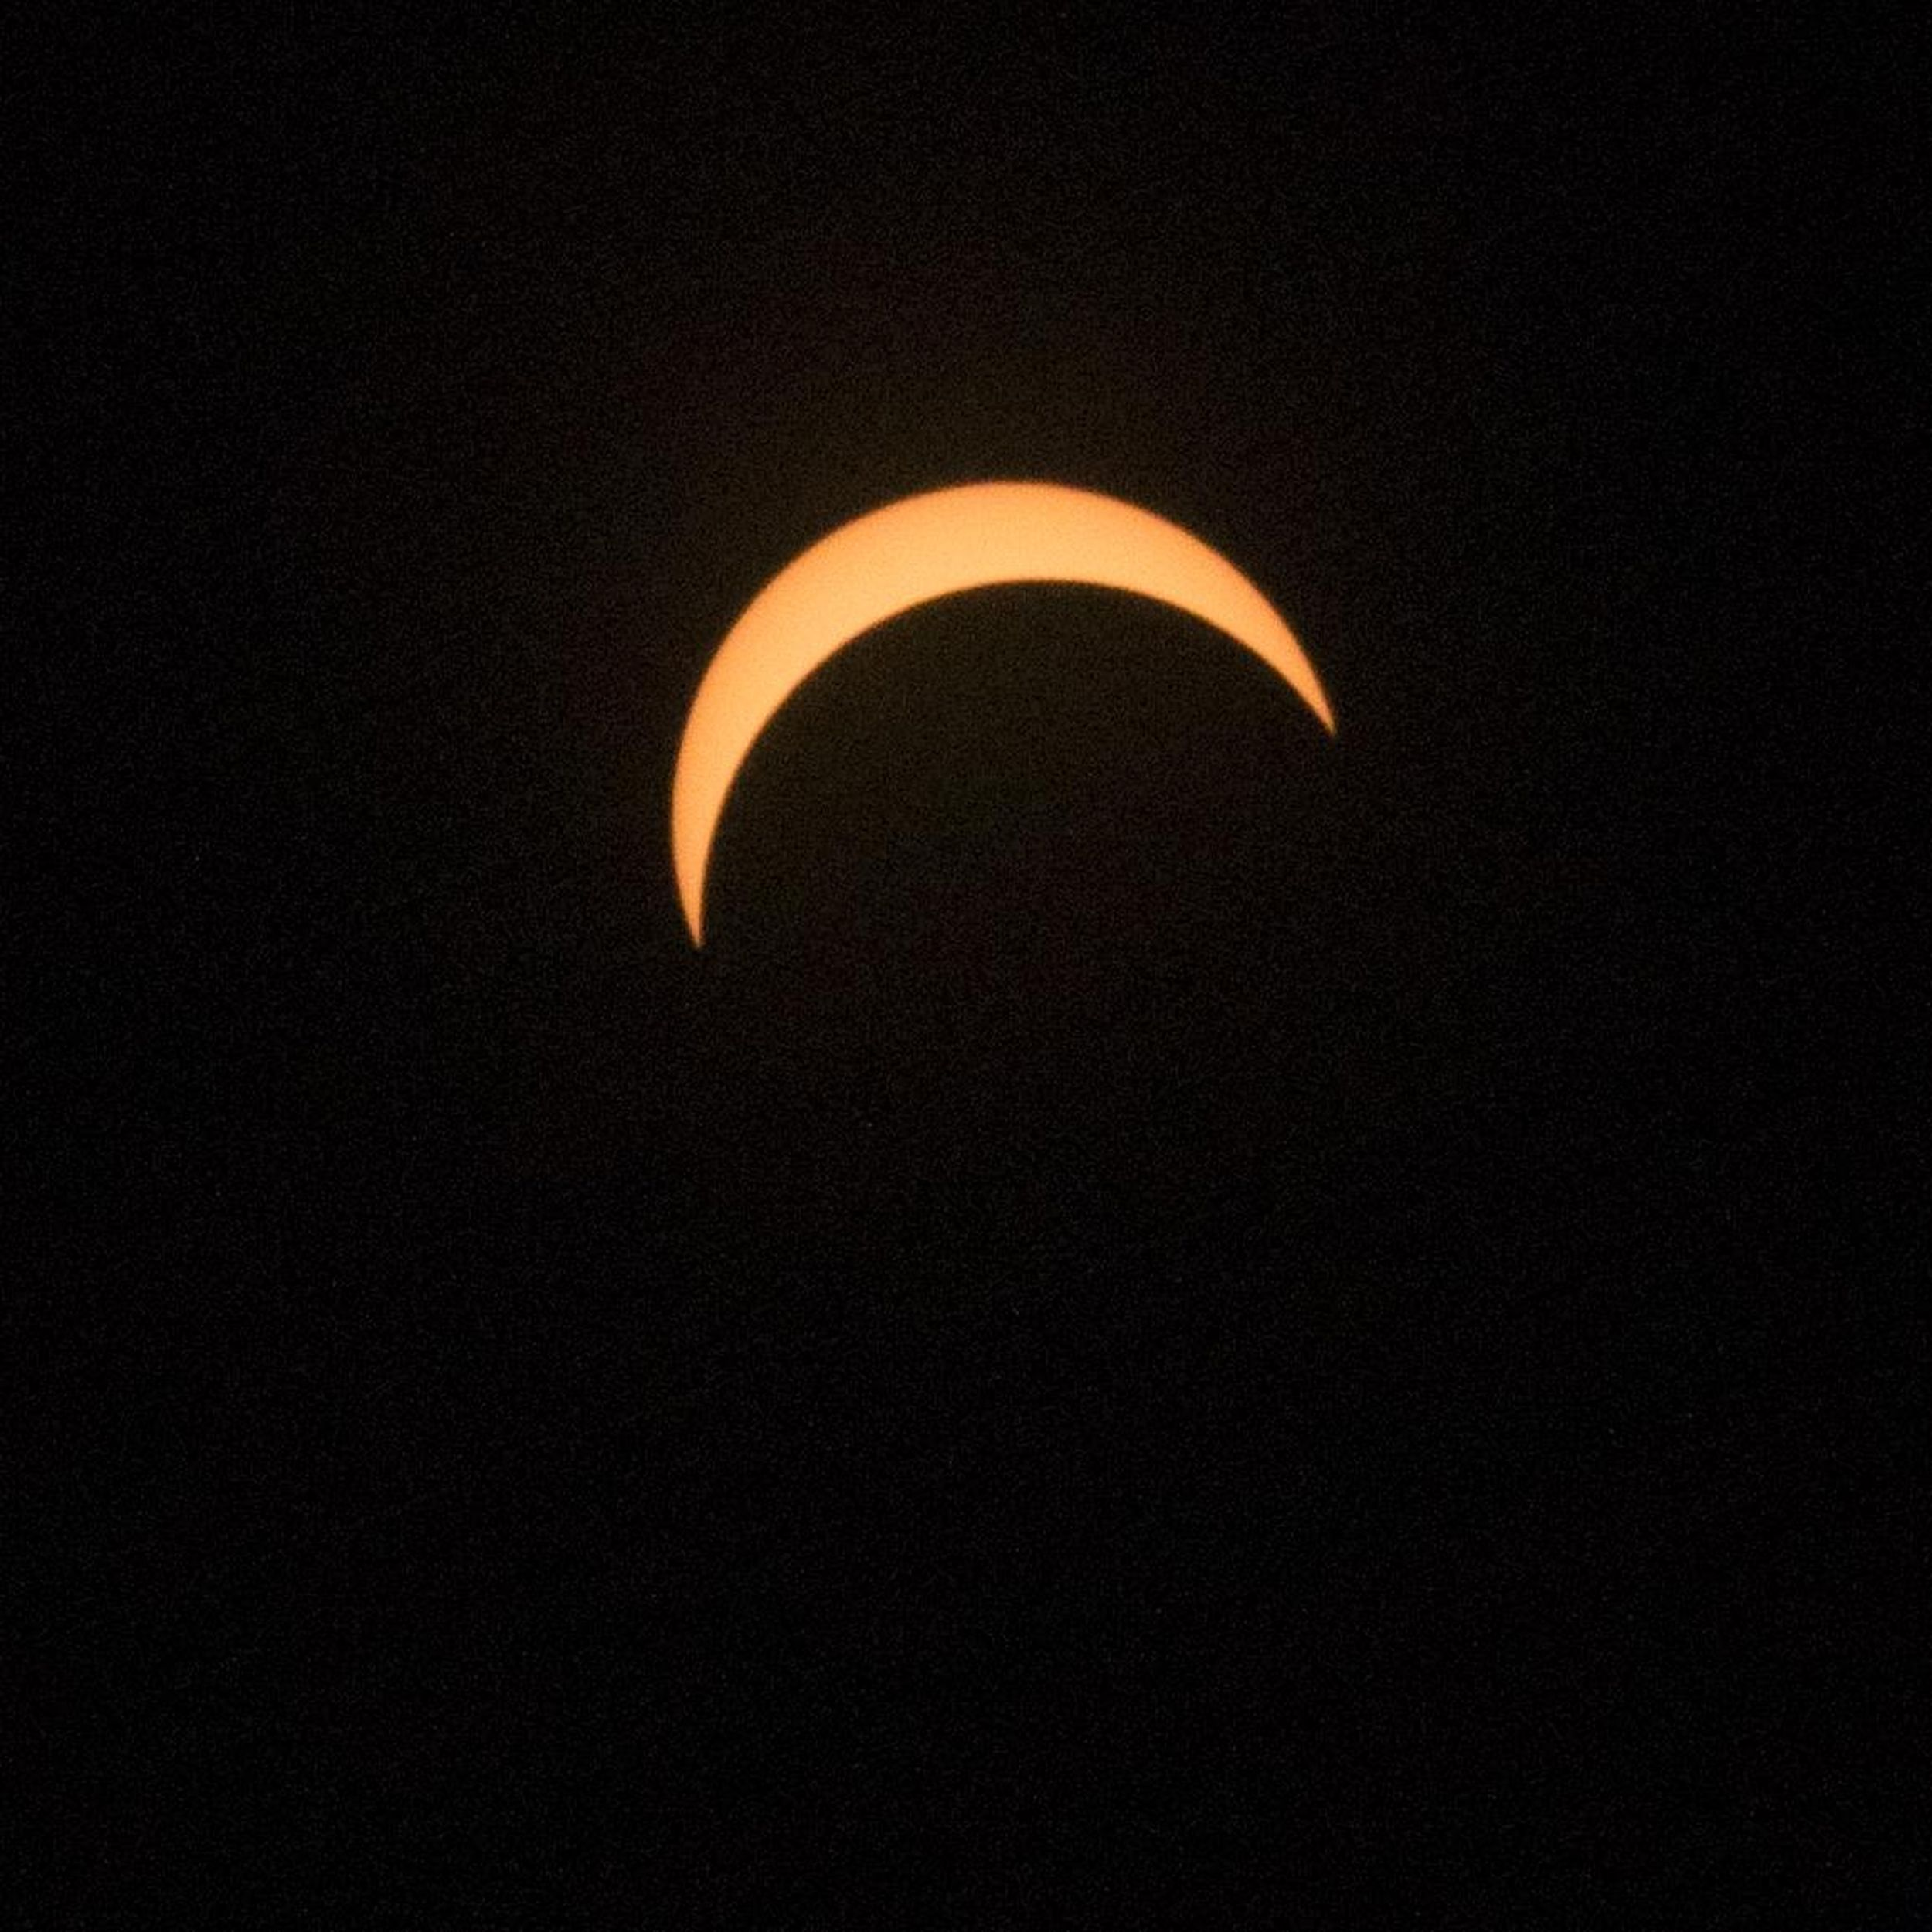 in downtown spokane the eclipse brought wonder and an eerie sky but no big moment the spokesman review the spokesman review